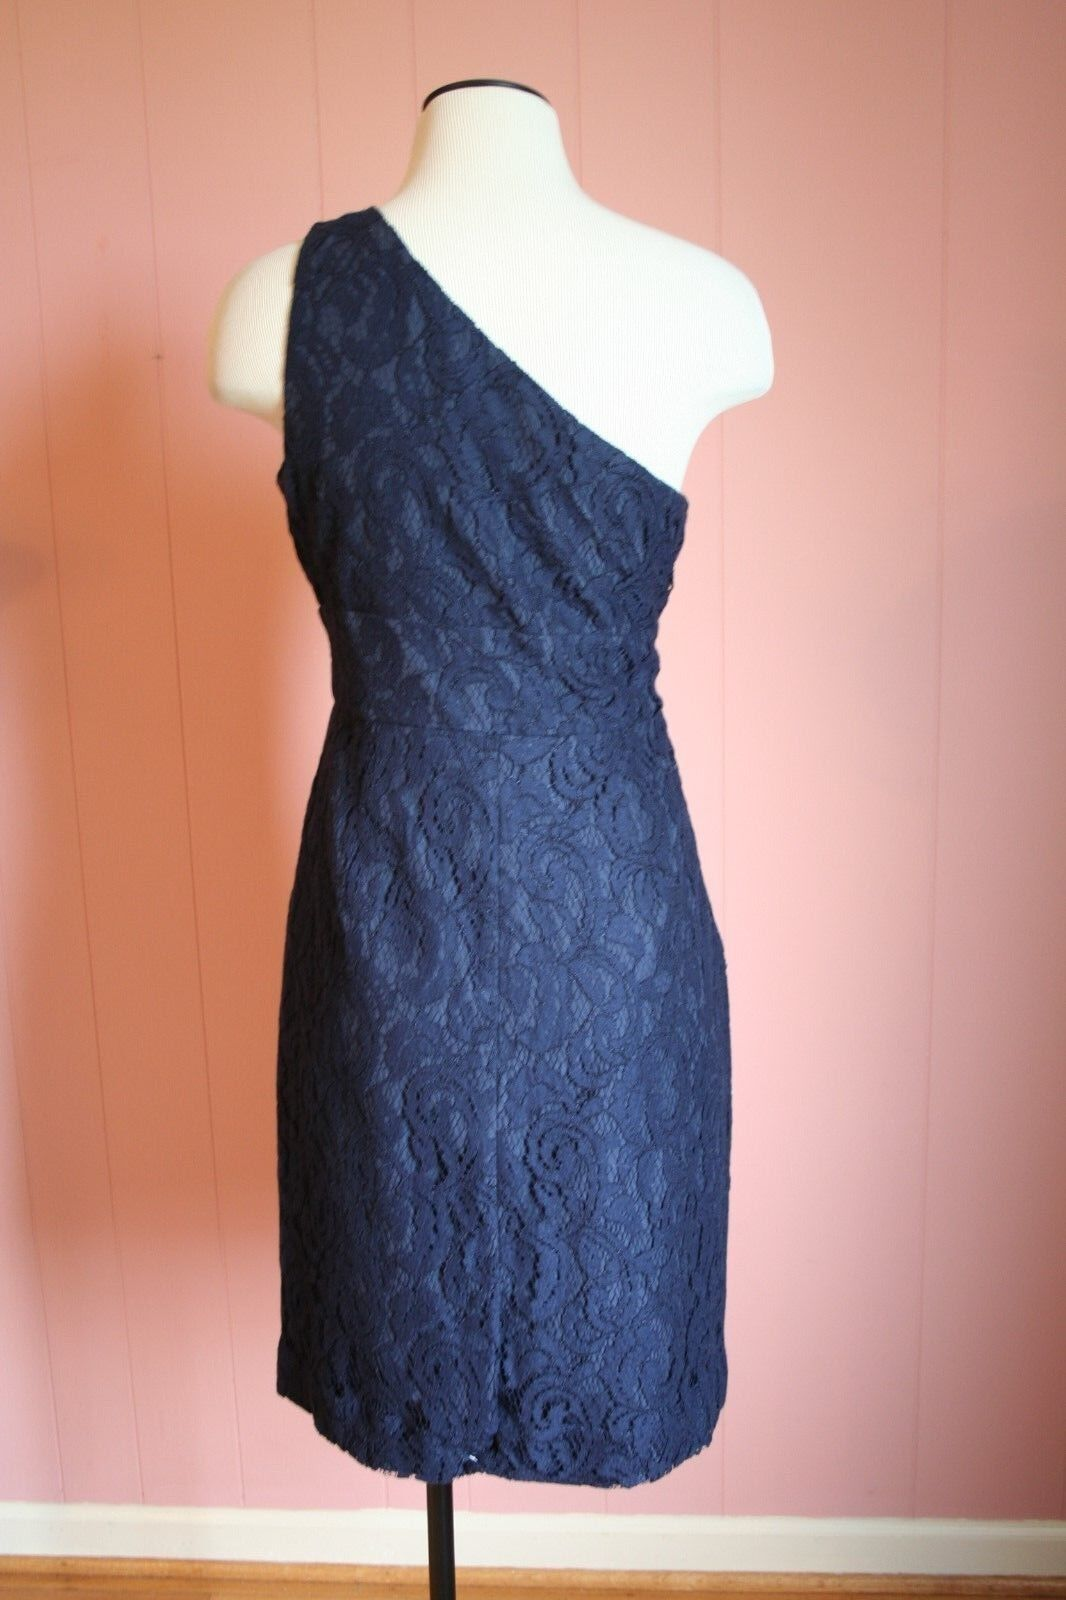 J Crew Alexa Dress in in in Leavers Lace 8 Navy  275 a9024 NWT afbeb7